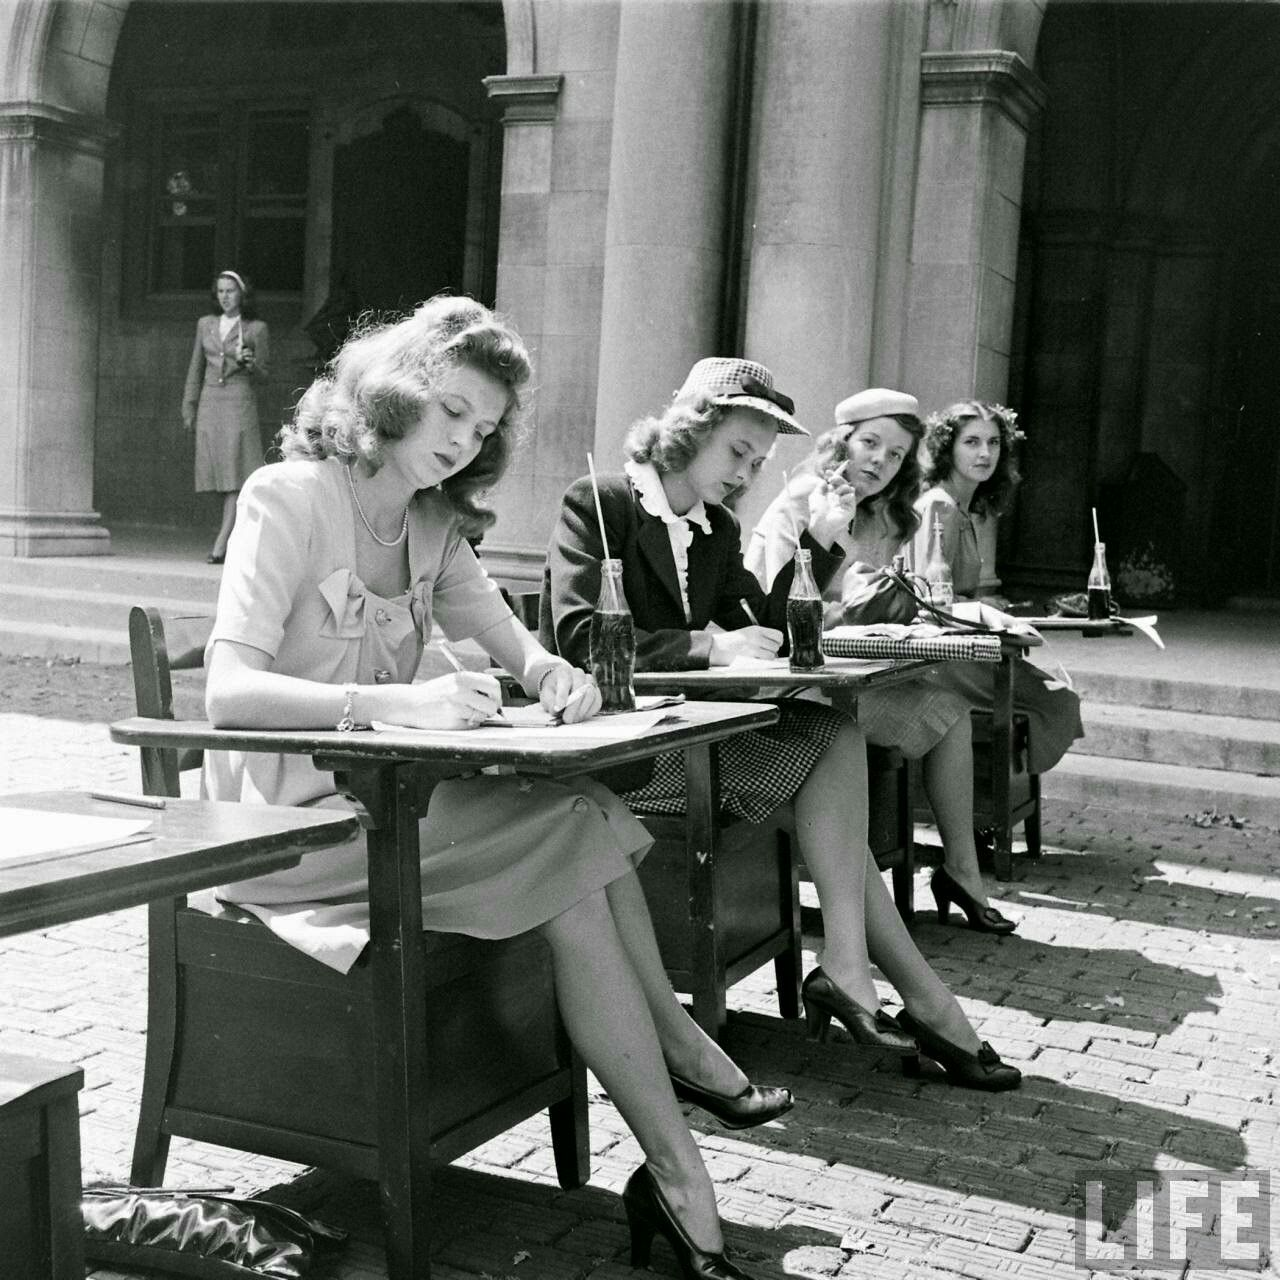 This image is so fascinating & iconic; I can't believe I've never seen it before! The outside desks, the coke bottles with straws, everyone dressed to the nines to take an exam---love it!